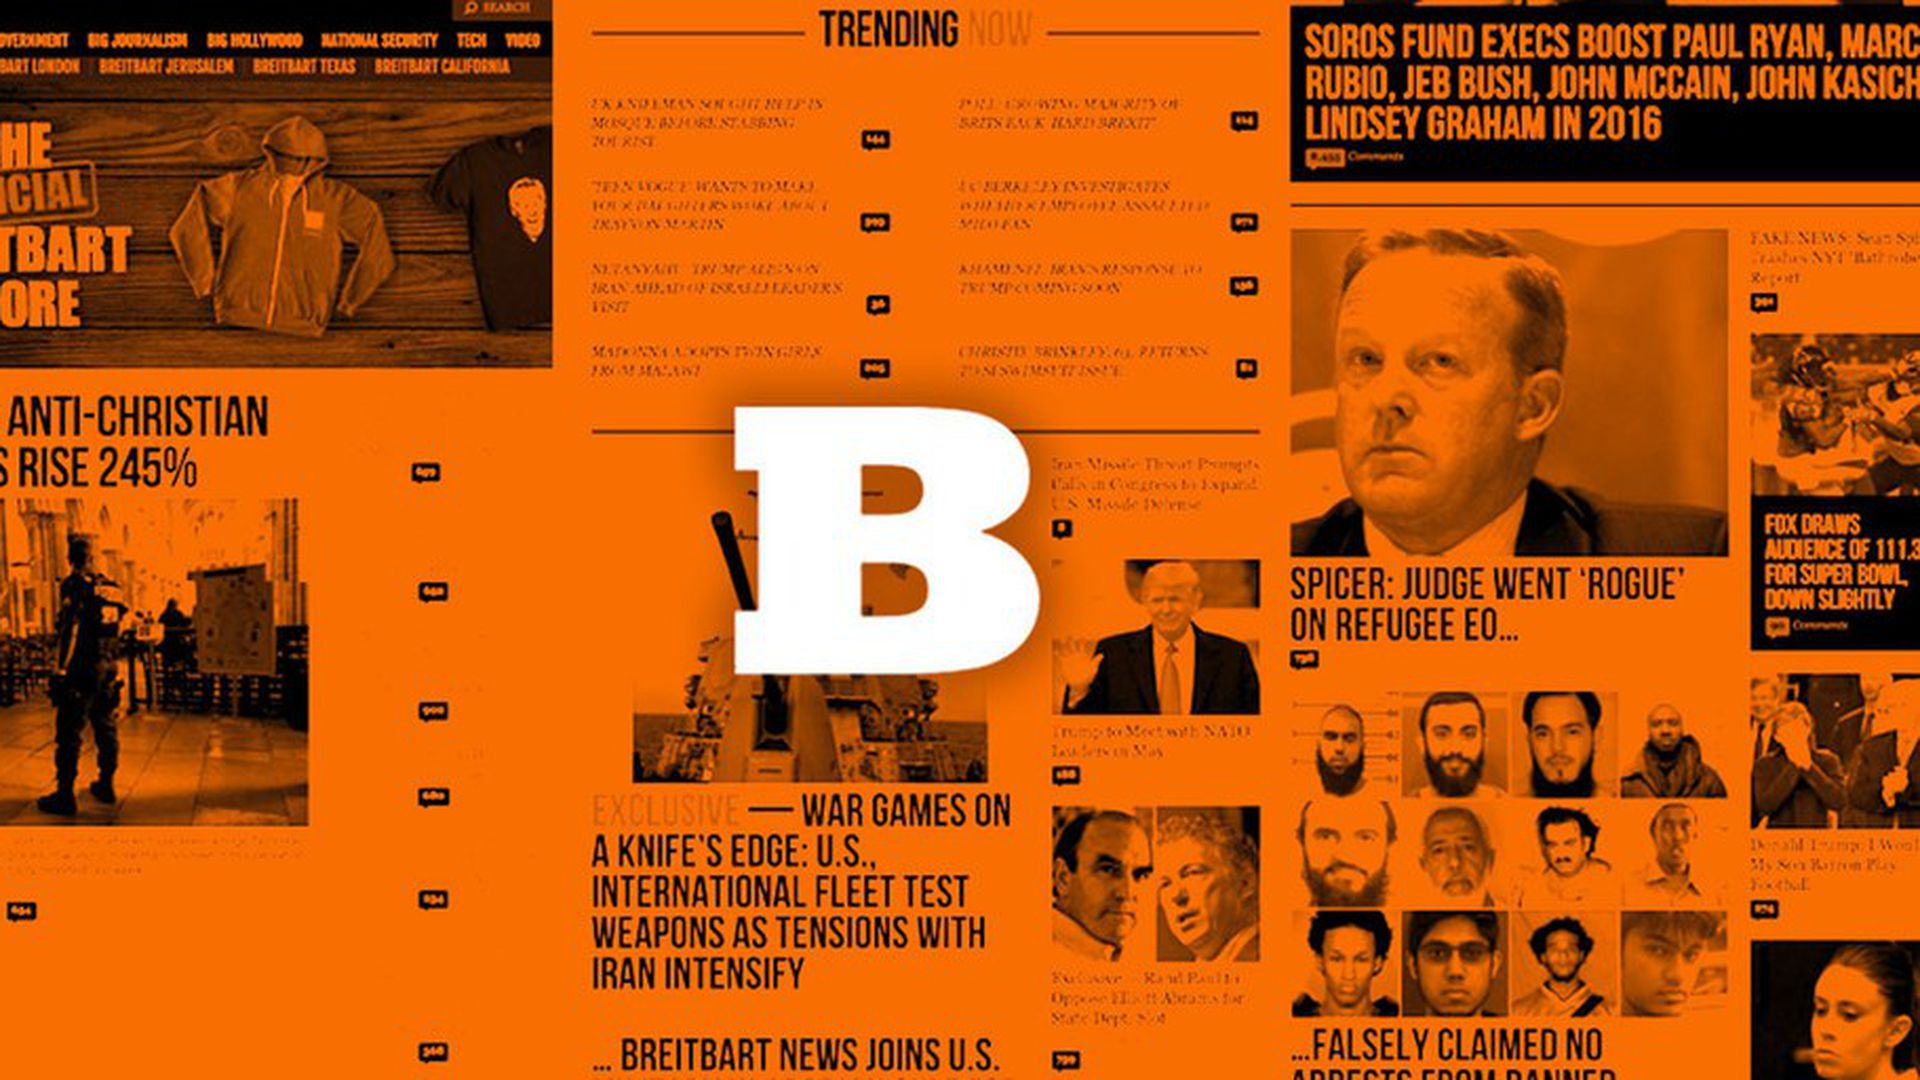 Breitbart's online stats outpacing mainstream rivals